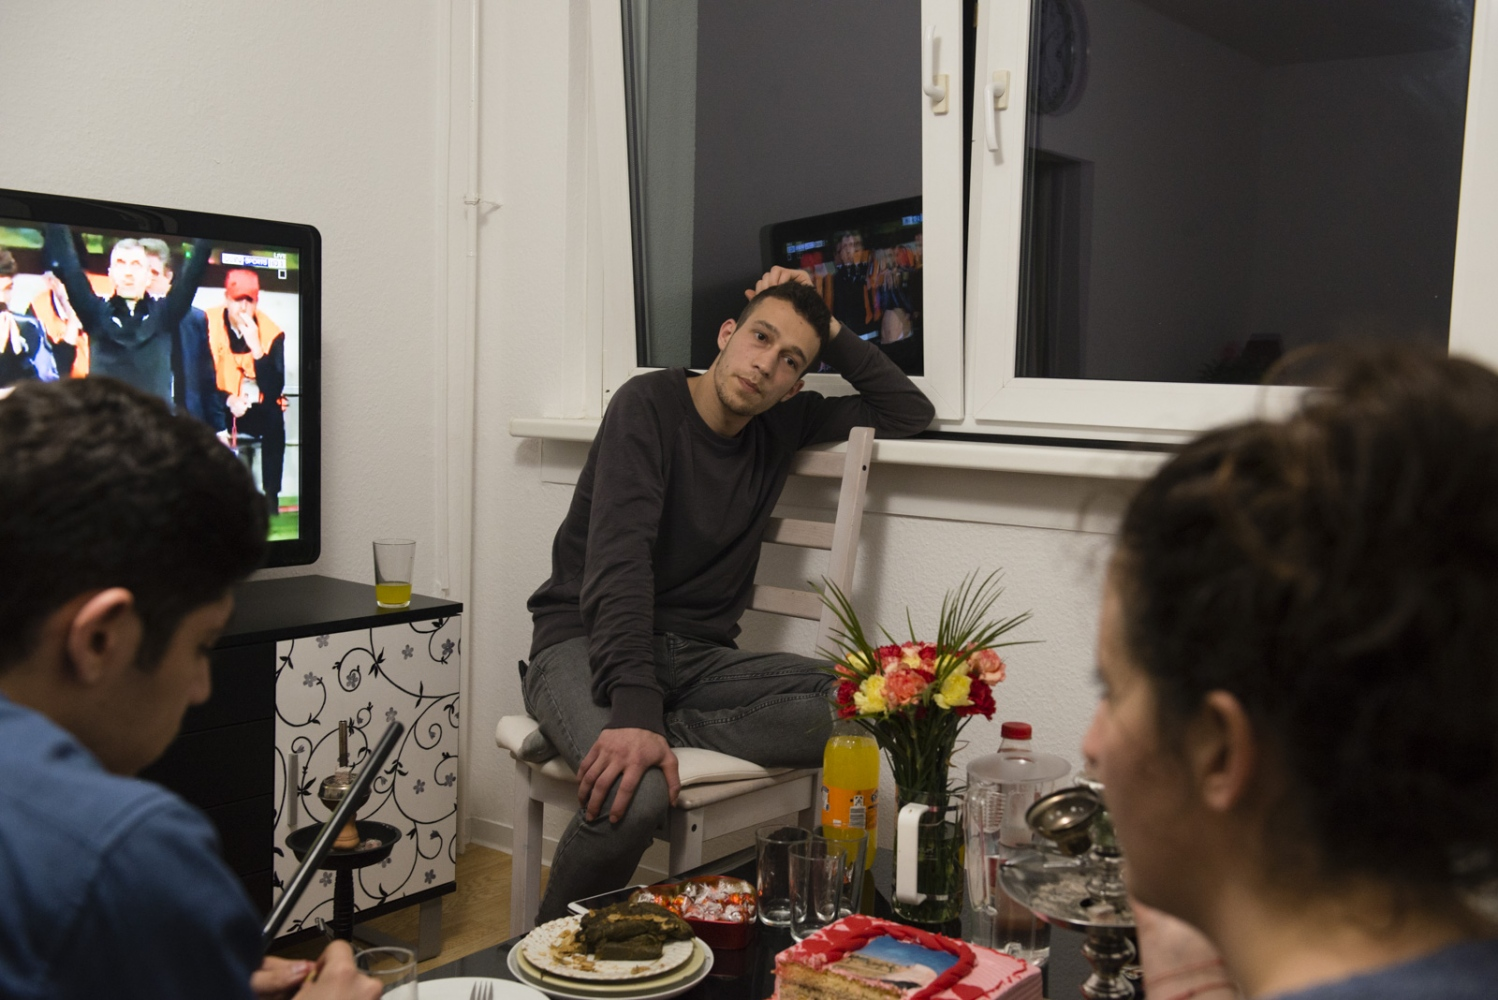 BERLIN| GERMANY | 2017-04-13 | Cheering for the German team of Bayer Munich, Amjad (23) smokes hooka at a monthly gathering where Syrian refugees and their German friends come together and socialize over tea, coca cola and hooka.